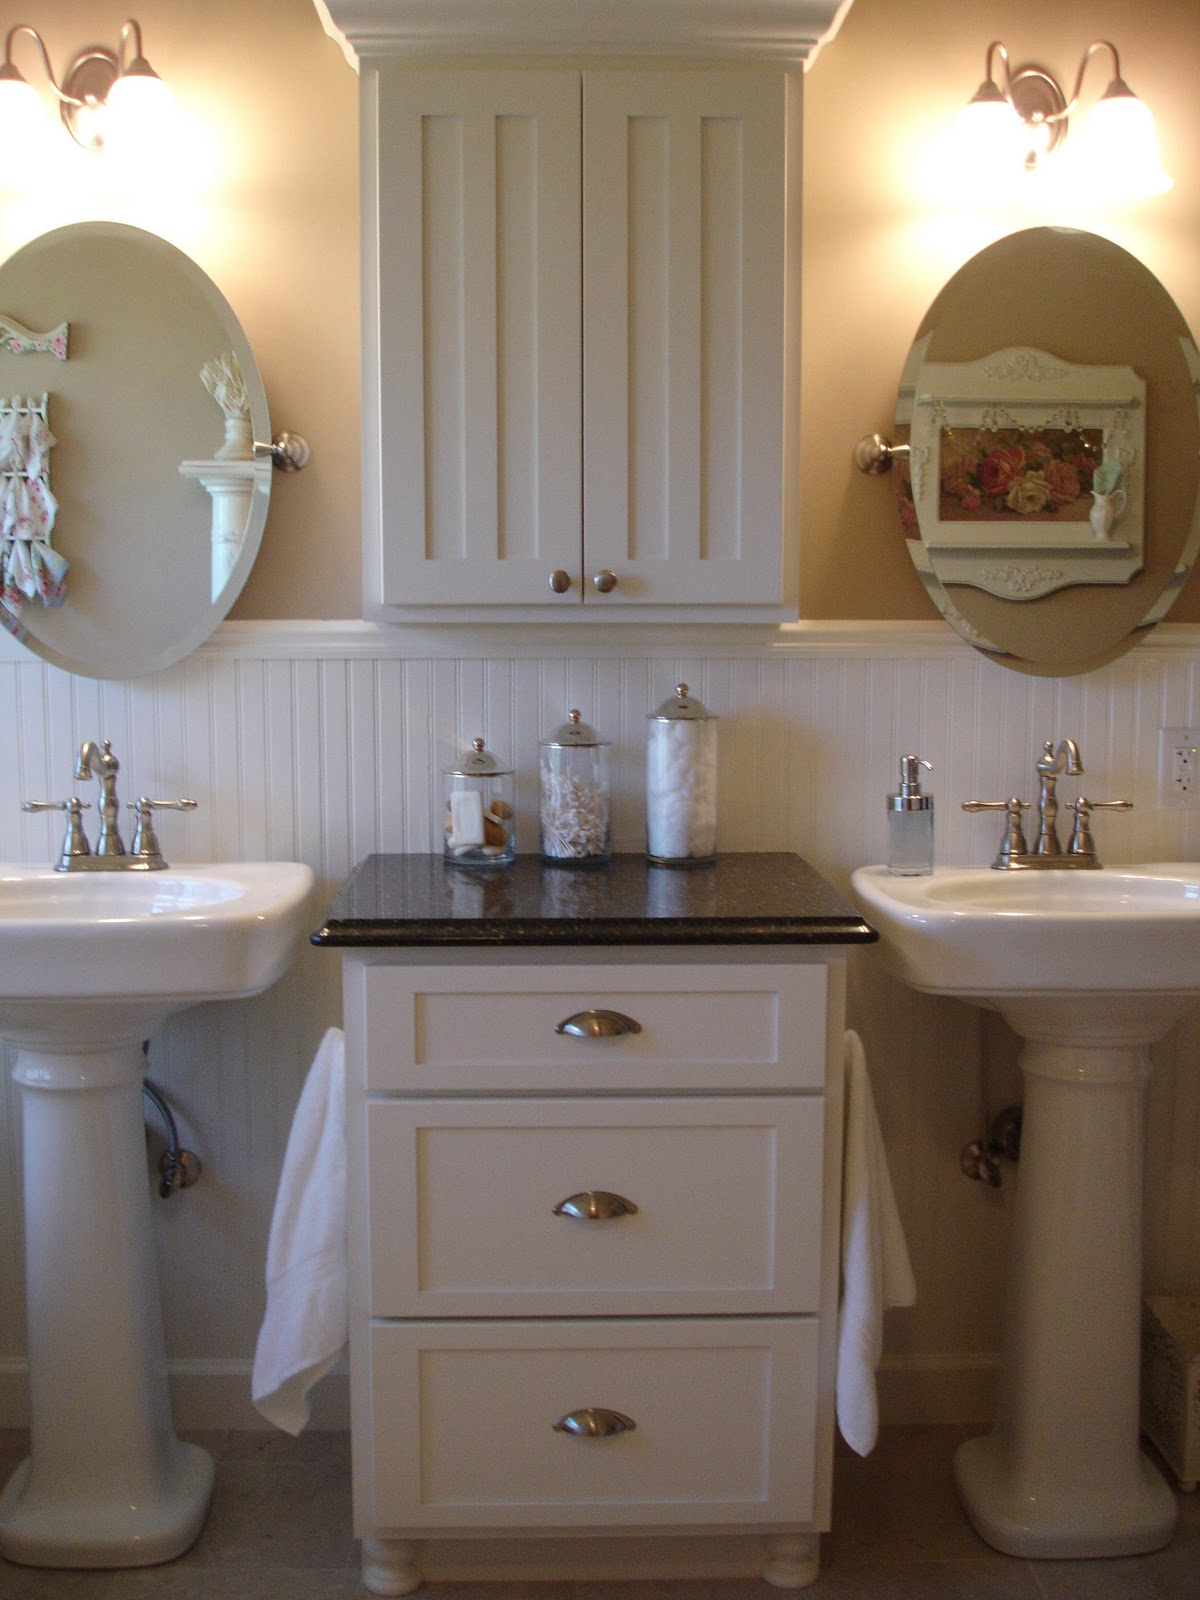 forever decorating my master bathroom update. Black Bedroom Furniture Sets. Home Design Ideas